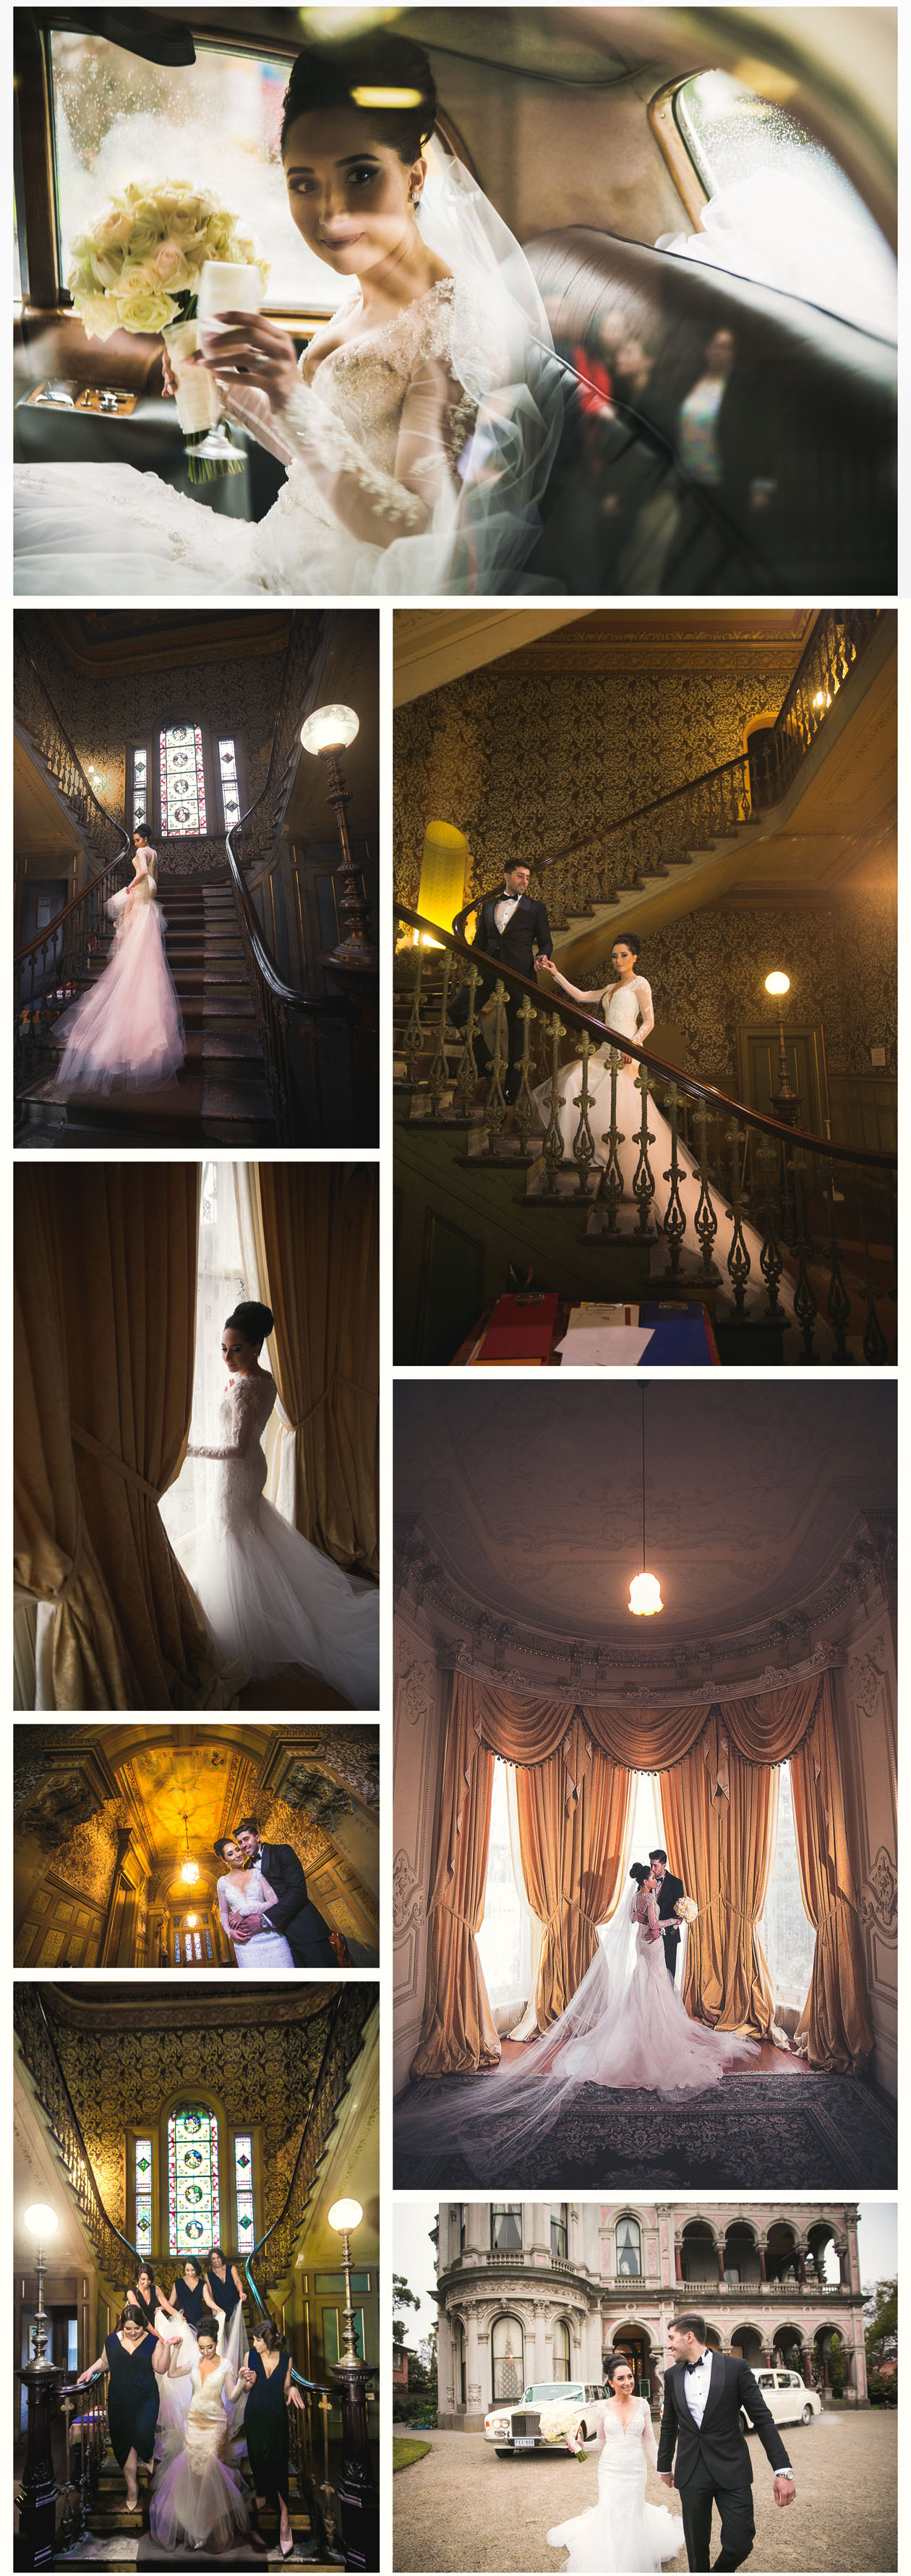 The Bride with the long wedding dress take photos with groom in Labassa mansion